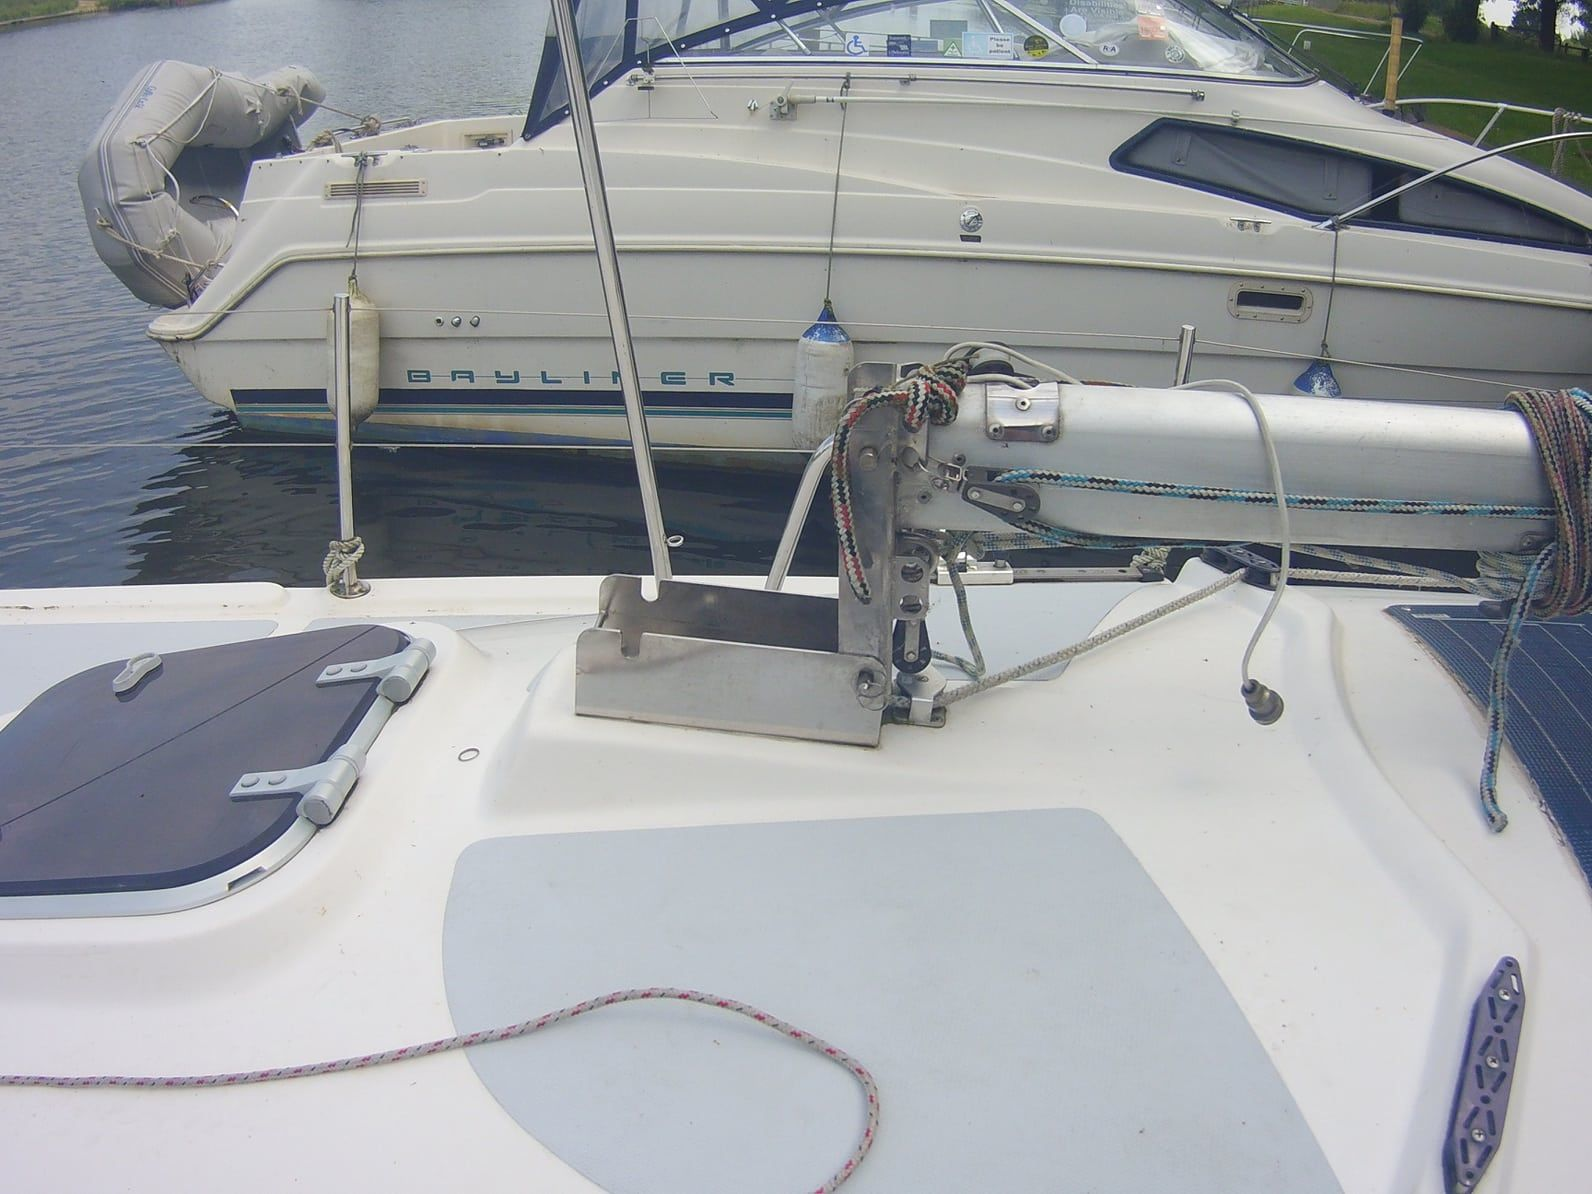 Hinged mast step on a Vivien 22 | Hinged and Tabernacle